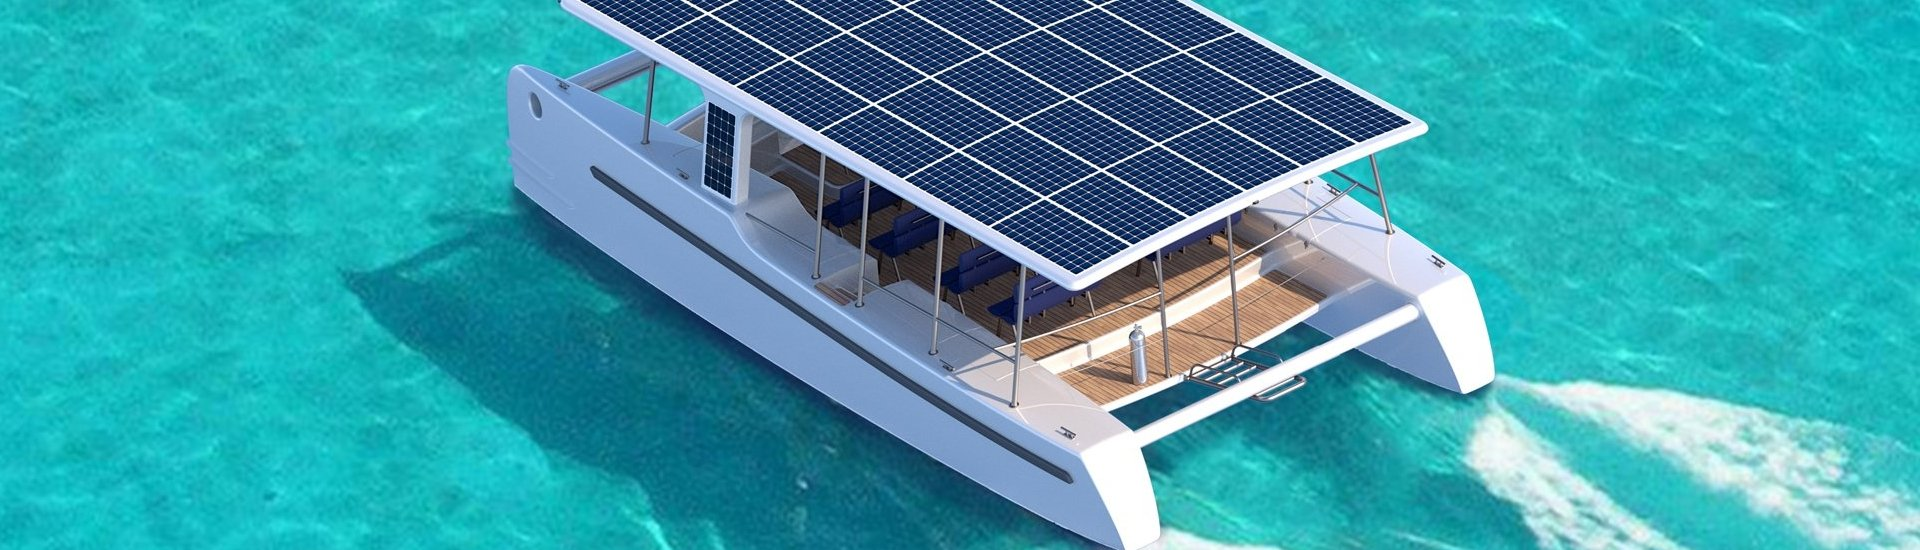 hight resolution of 6 best marine solar panels jul 2019 reviews buying guide solar panels as well marine engines boat wiring help in addition solar